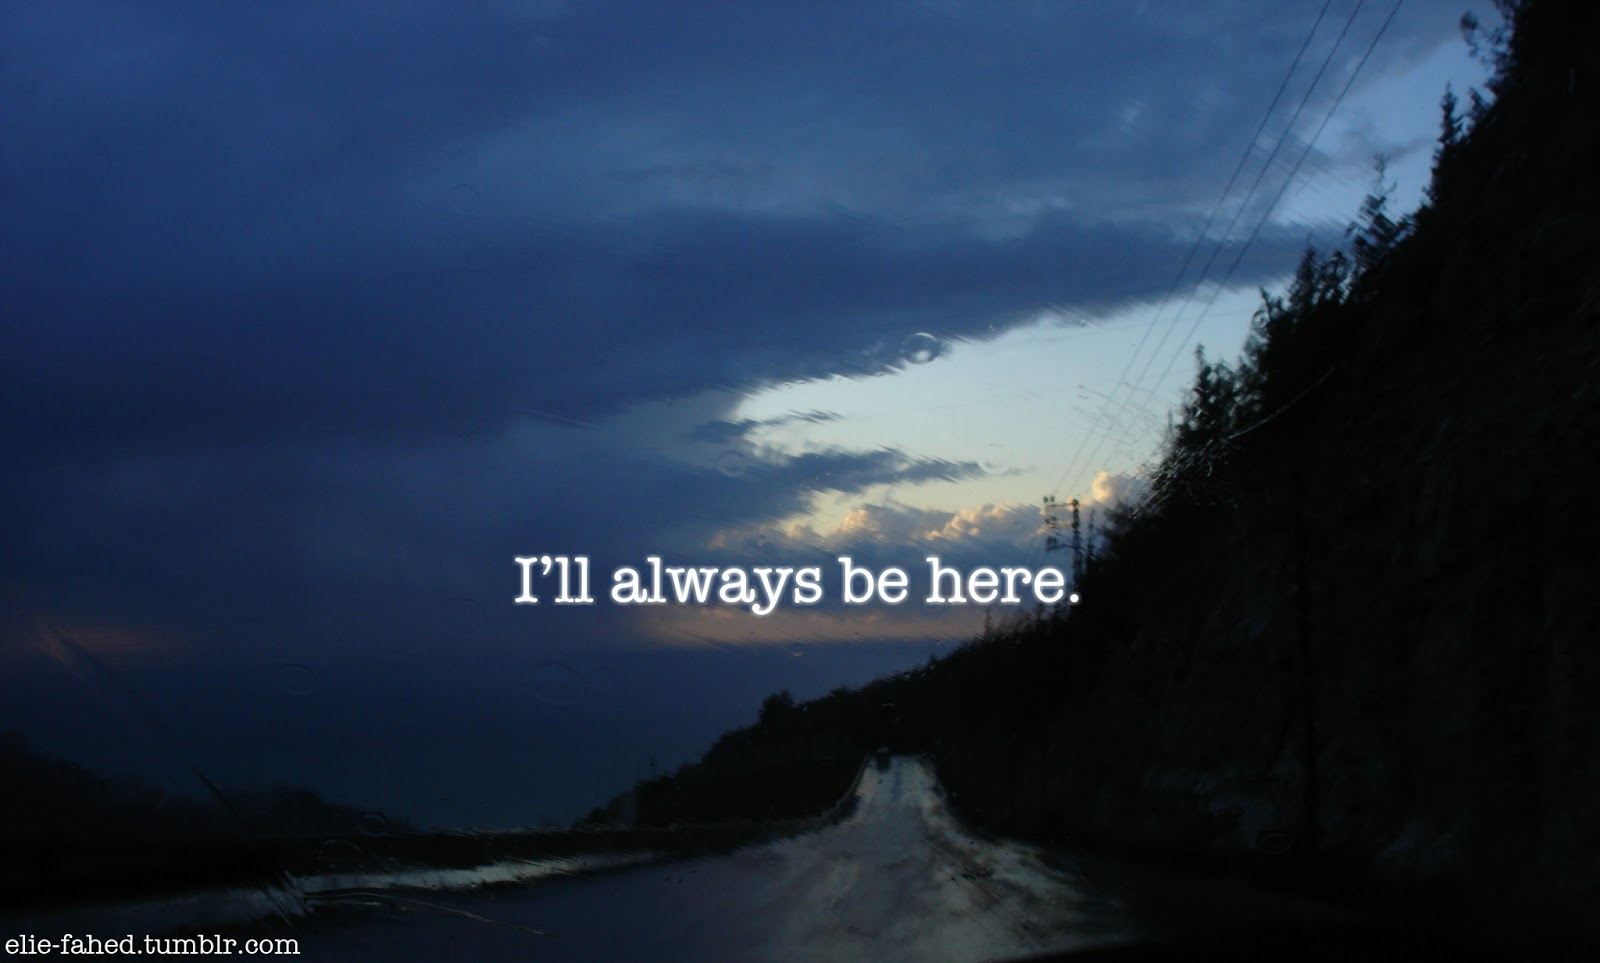 I Ll Always Be Here For You Quotes: Winter Is Here Quotes. QuotesGram